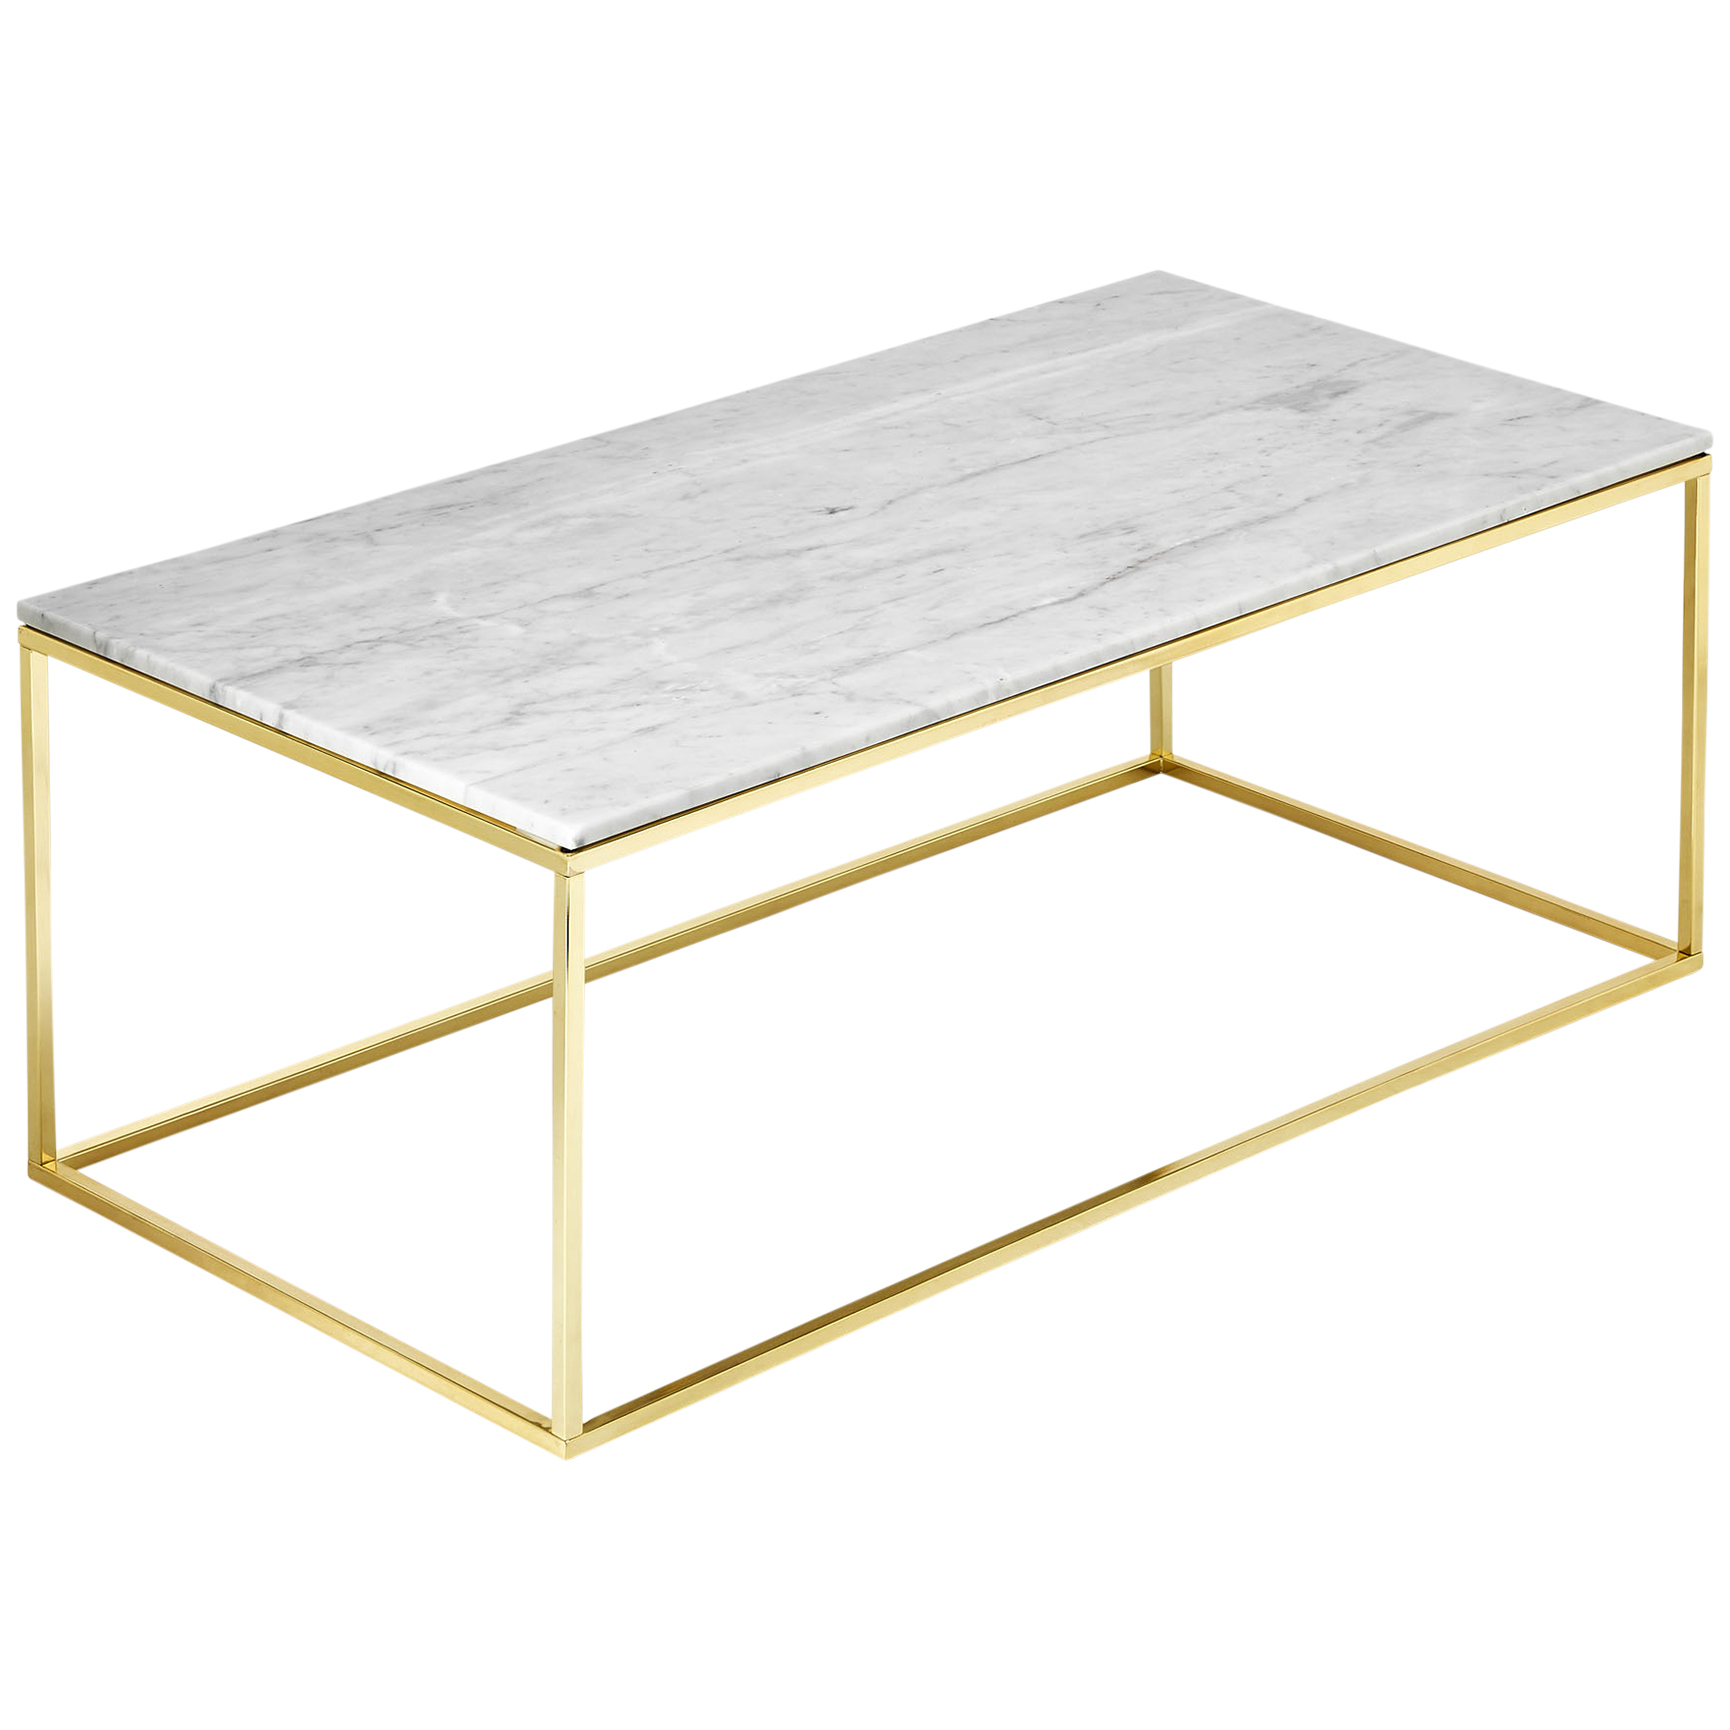 Popular 225 list coffe tables White marble coffee table